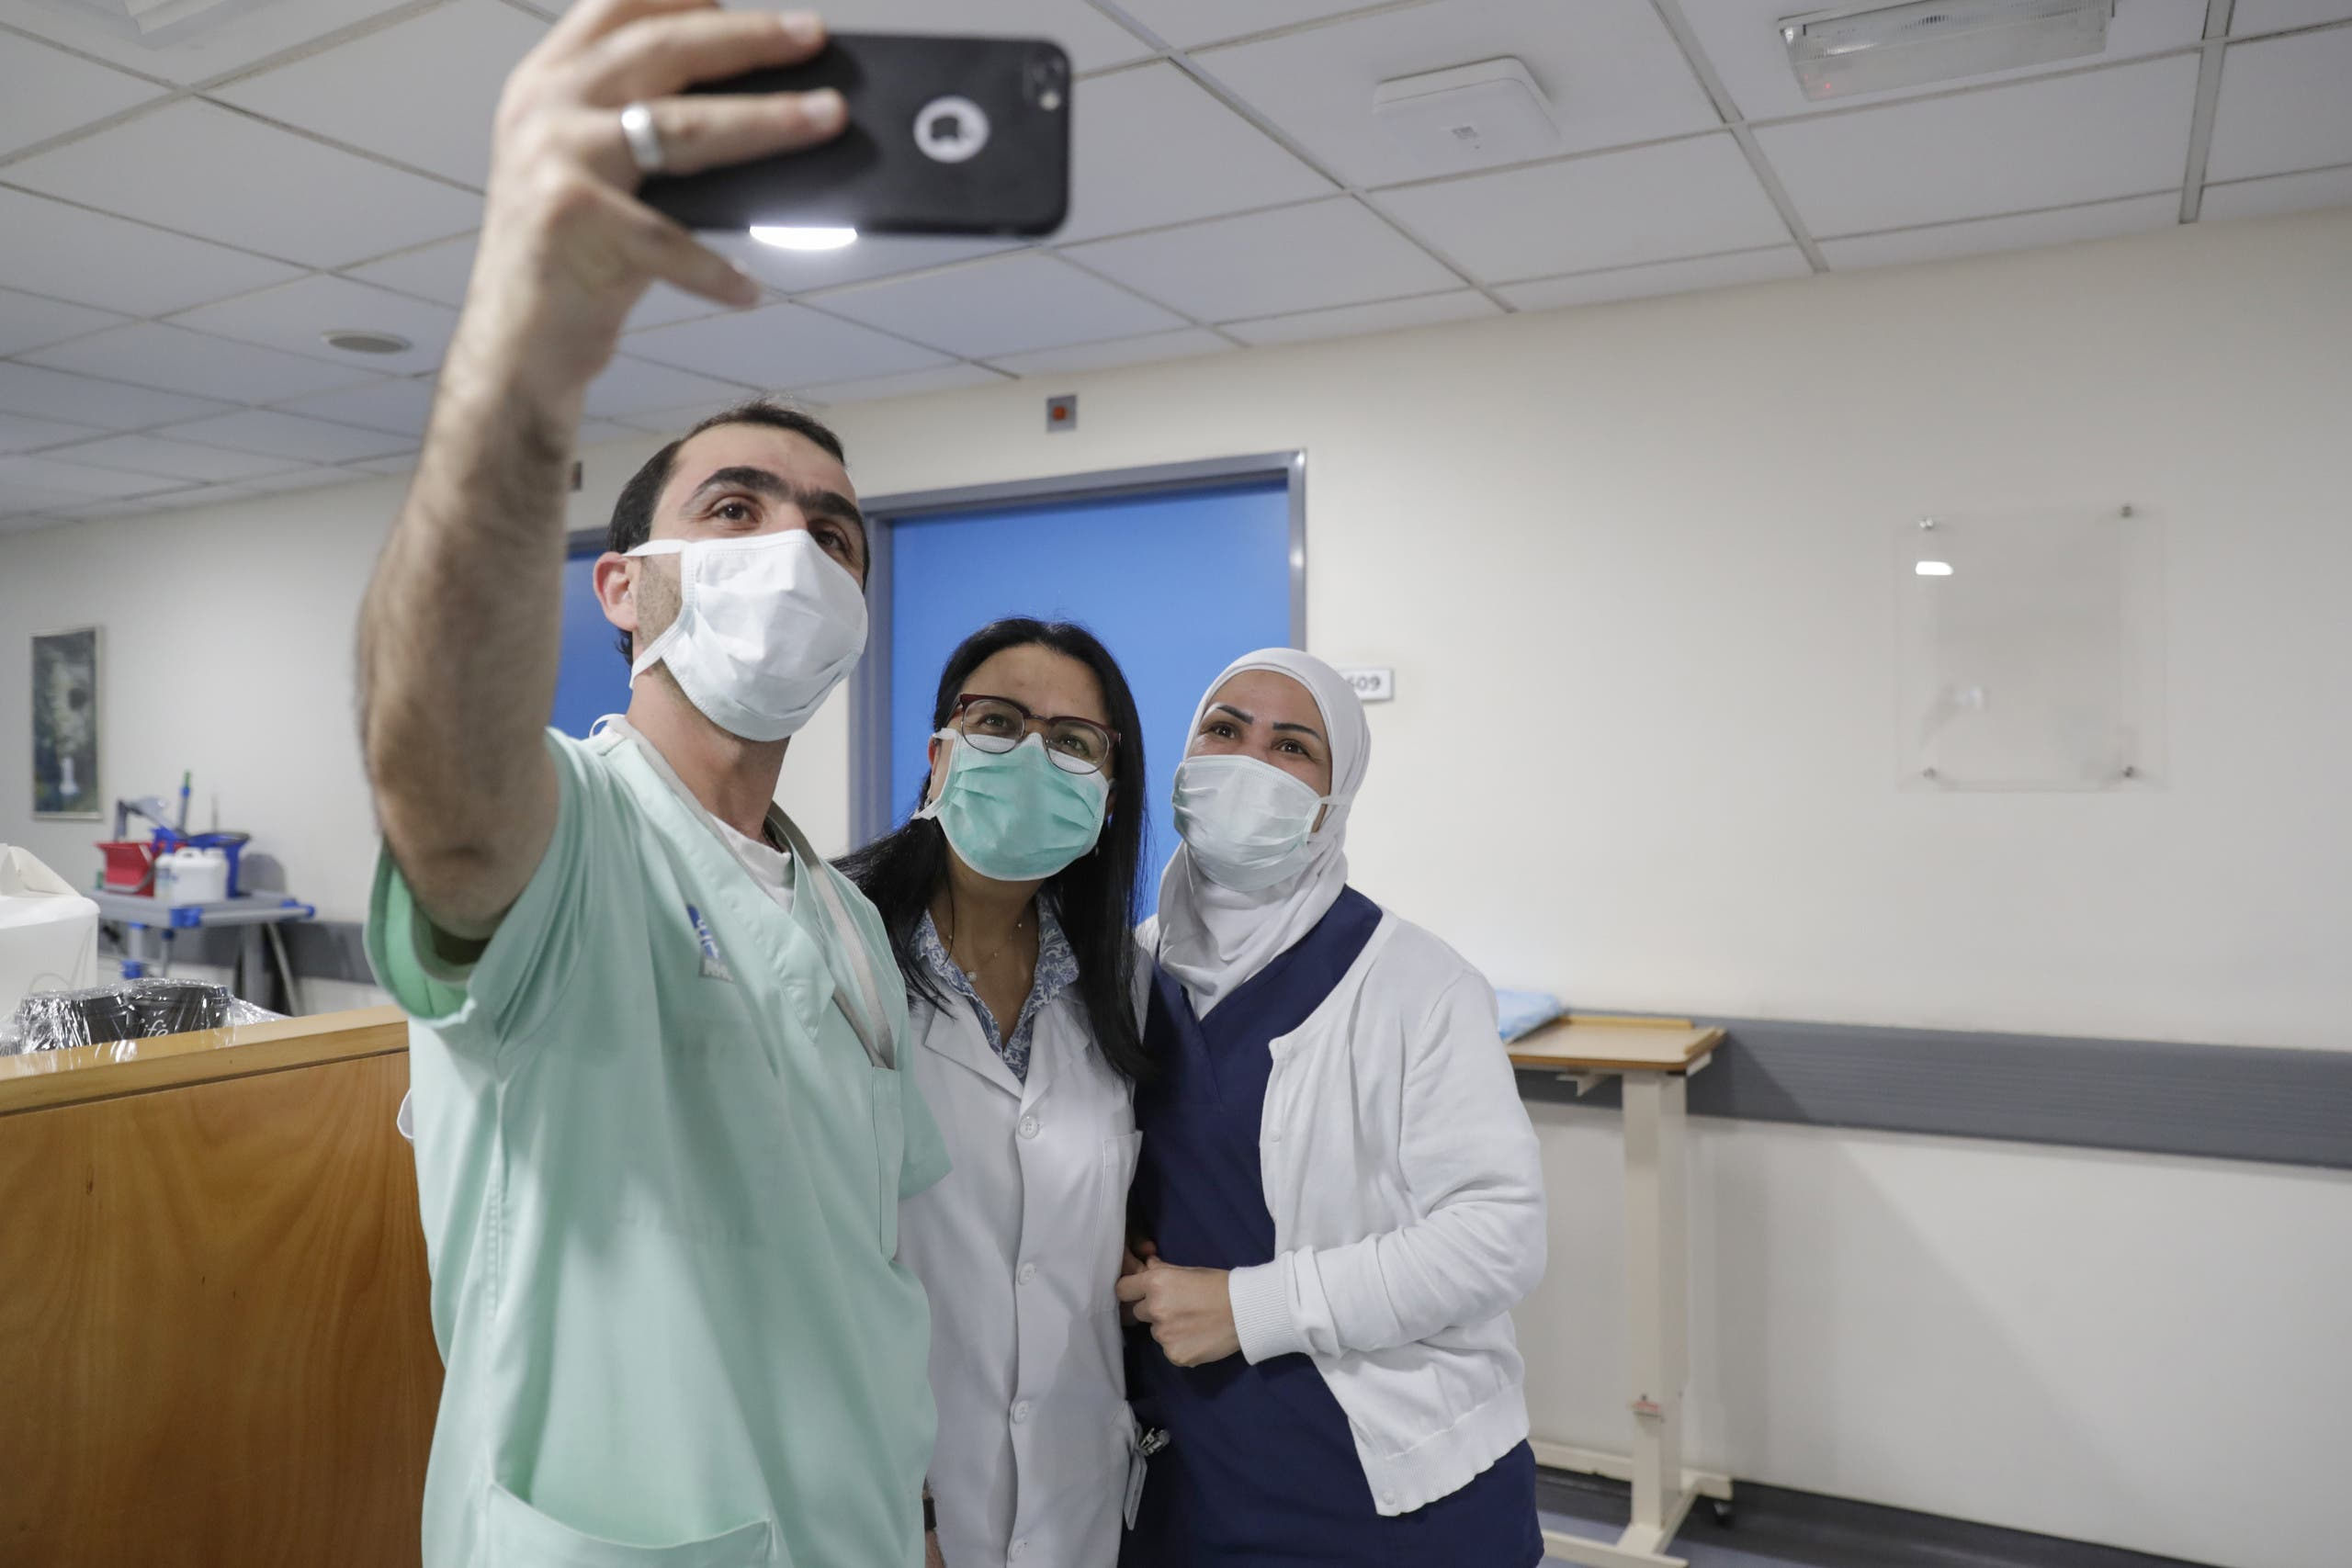 Staff members at Rafic Hariri University Hospital in Beirut, Lebanon, take a selfie amid coronavirus, February 21, 2020. (AFP)